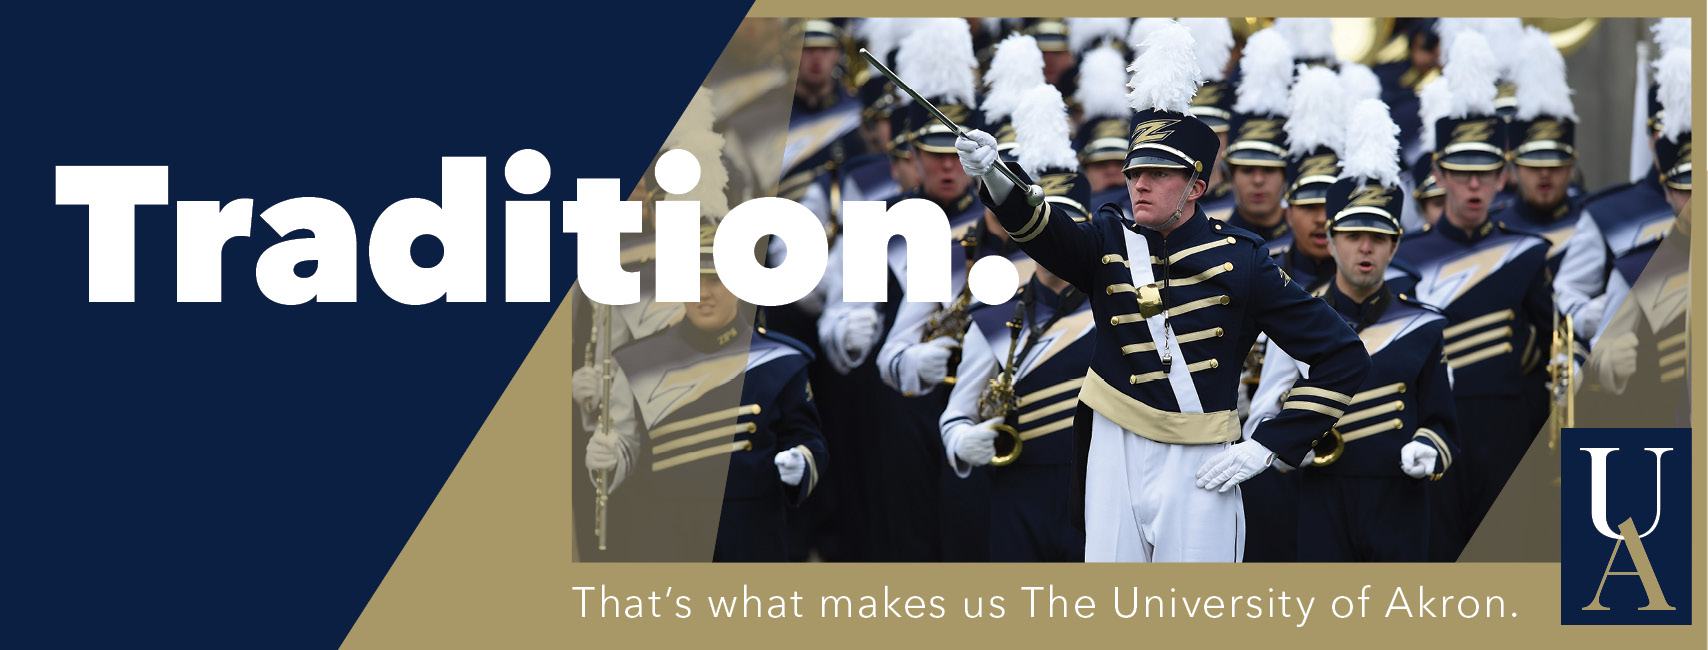 Akron e-Magazine banner - Tradition: What makes us The University of Akron